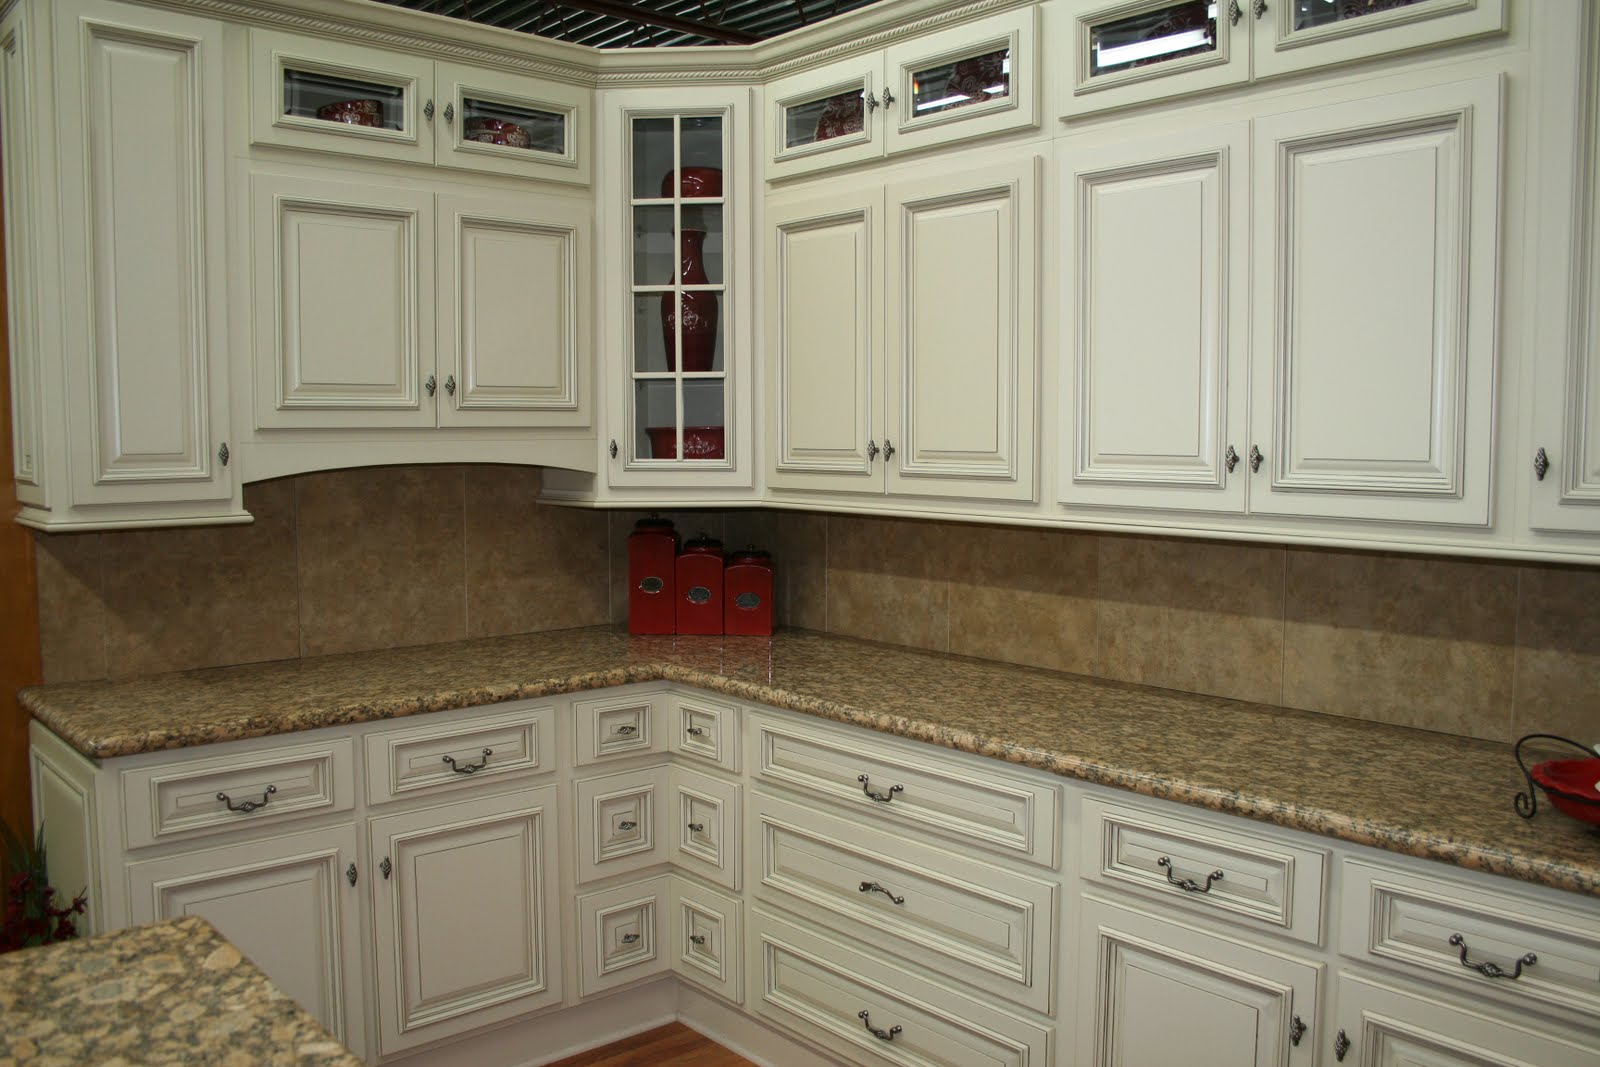 Refinish kitchen cabinets antique white roselawnlutheran for Ideas to redo old kitchen cabinets